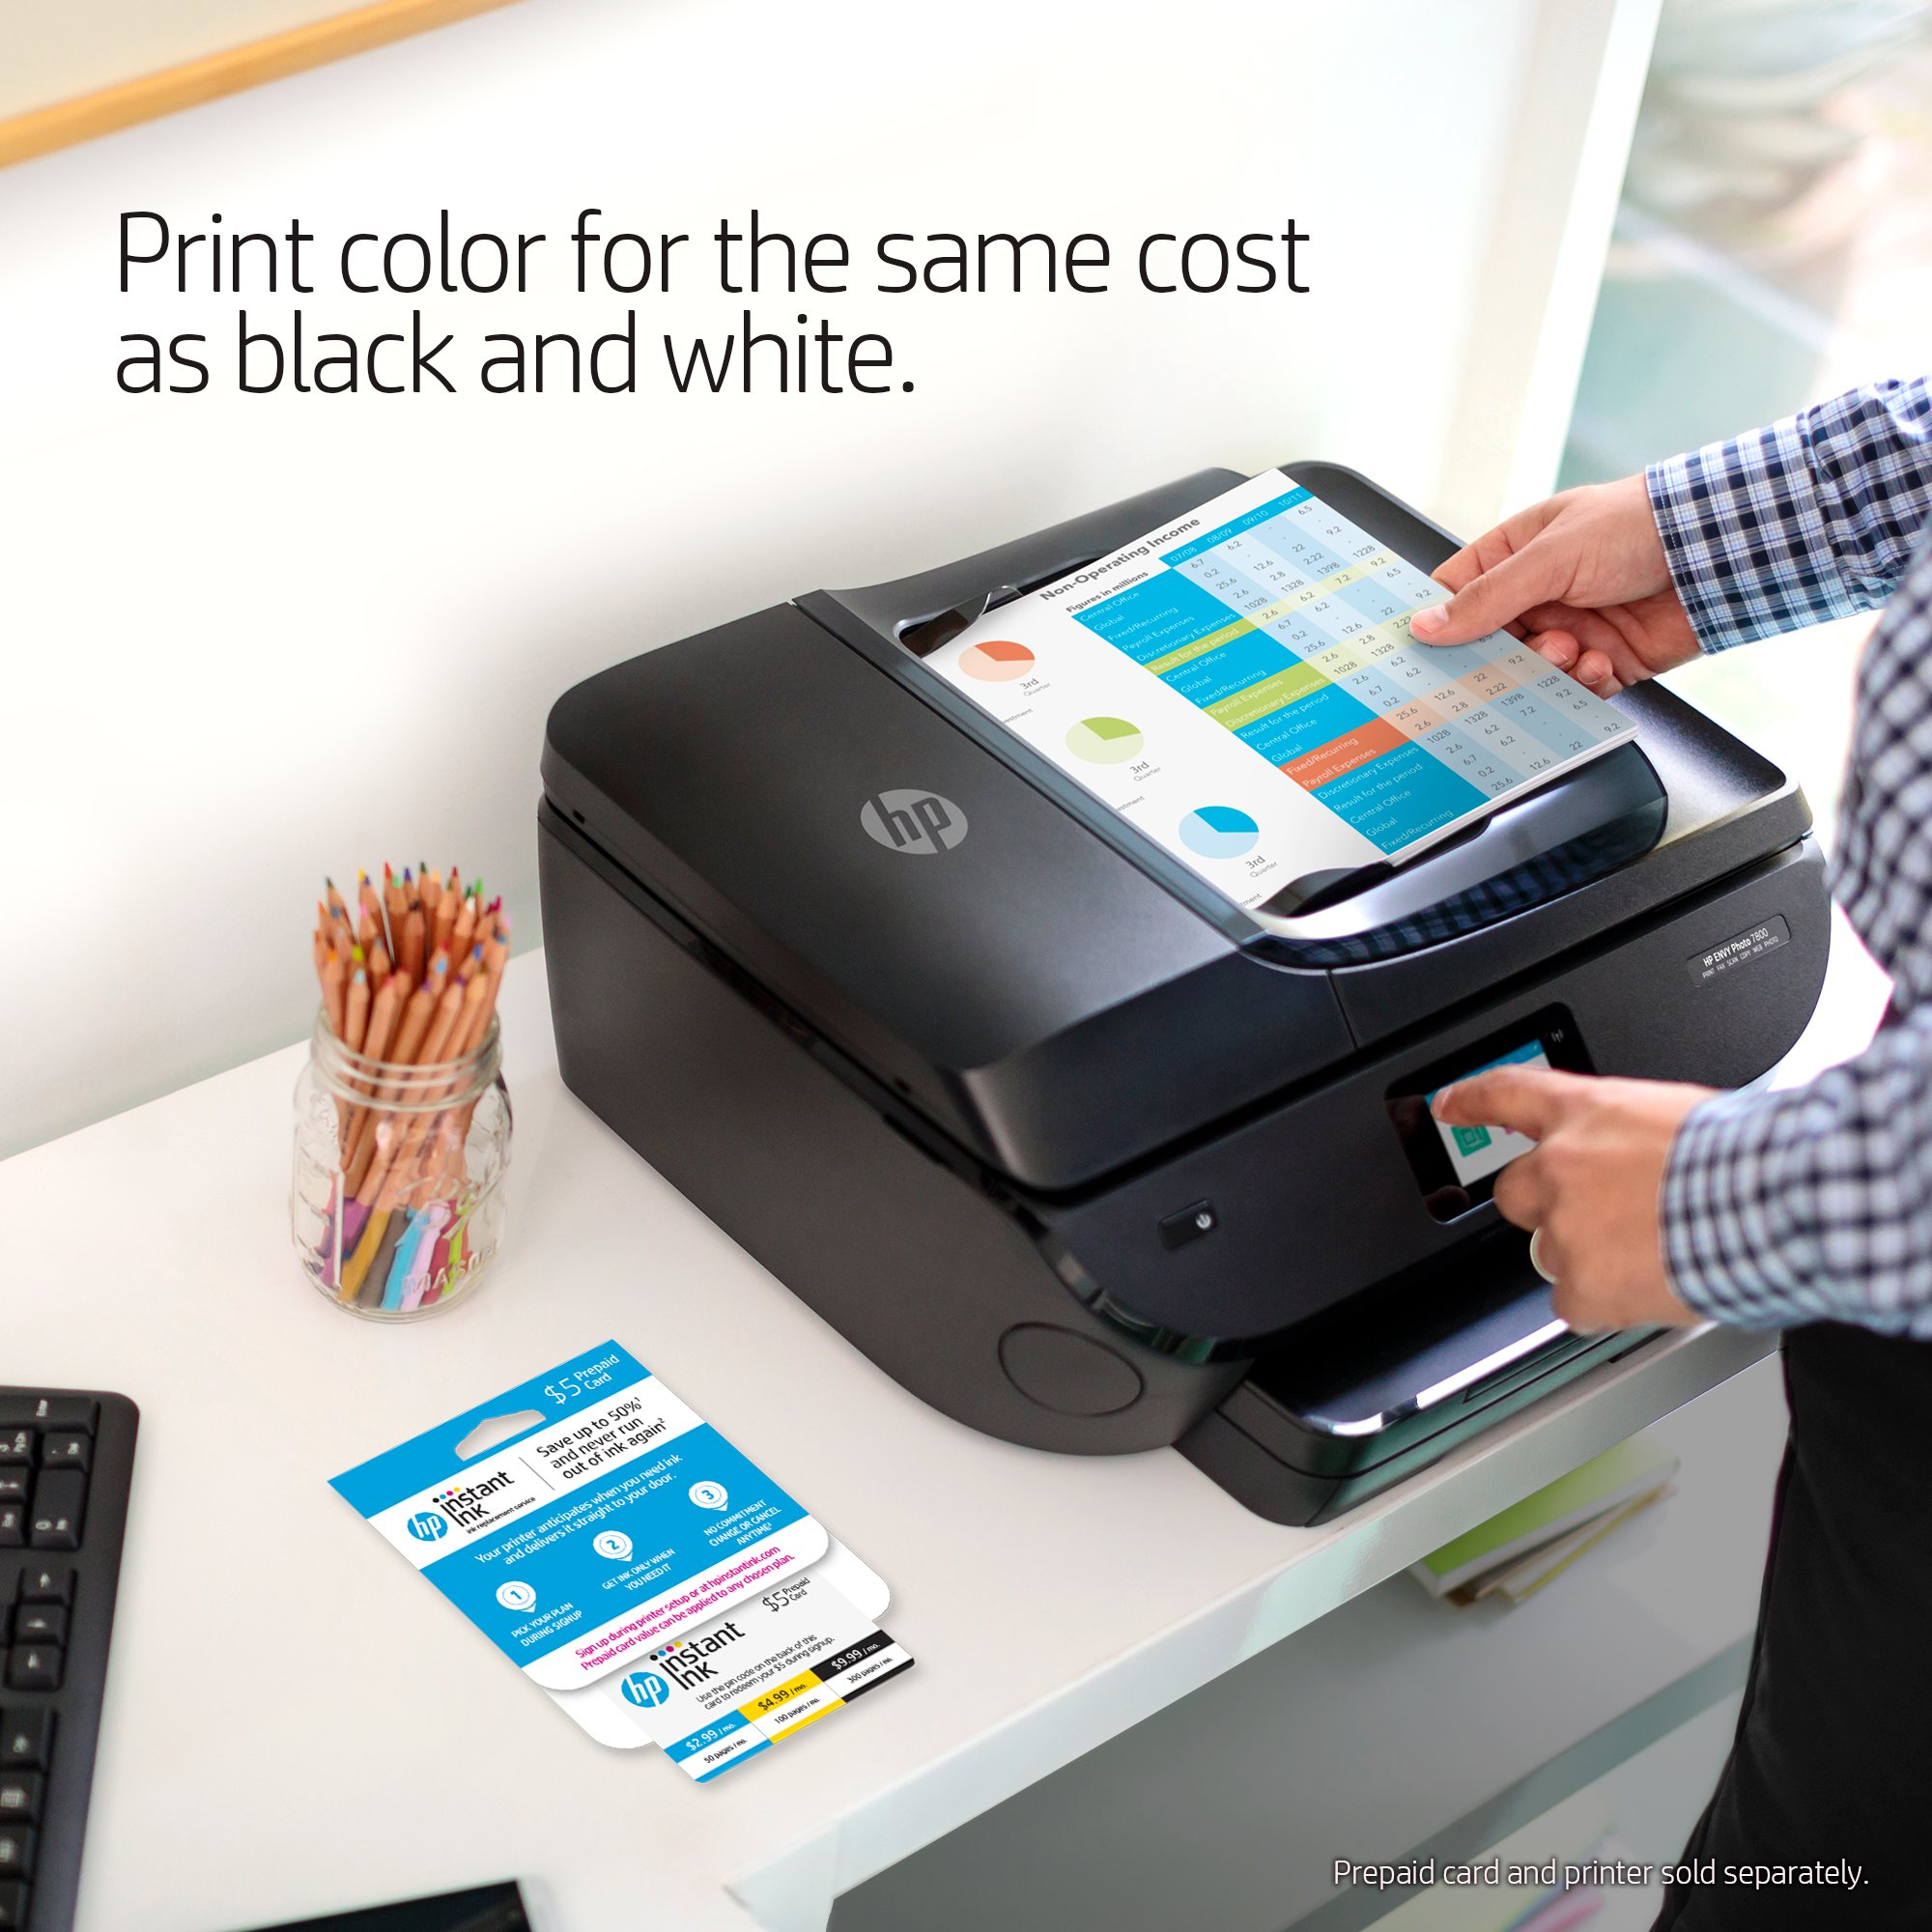 HP ENVY 5055 All-in-One Photo Printer with Wireless Printing (M2U85A) and Instant Ink Prepaid Card for 50 100 300 Page per Month Plans (3HZ65AN) by HP (Image #6)